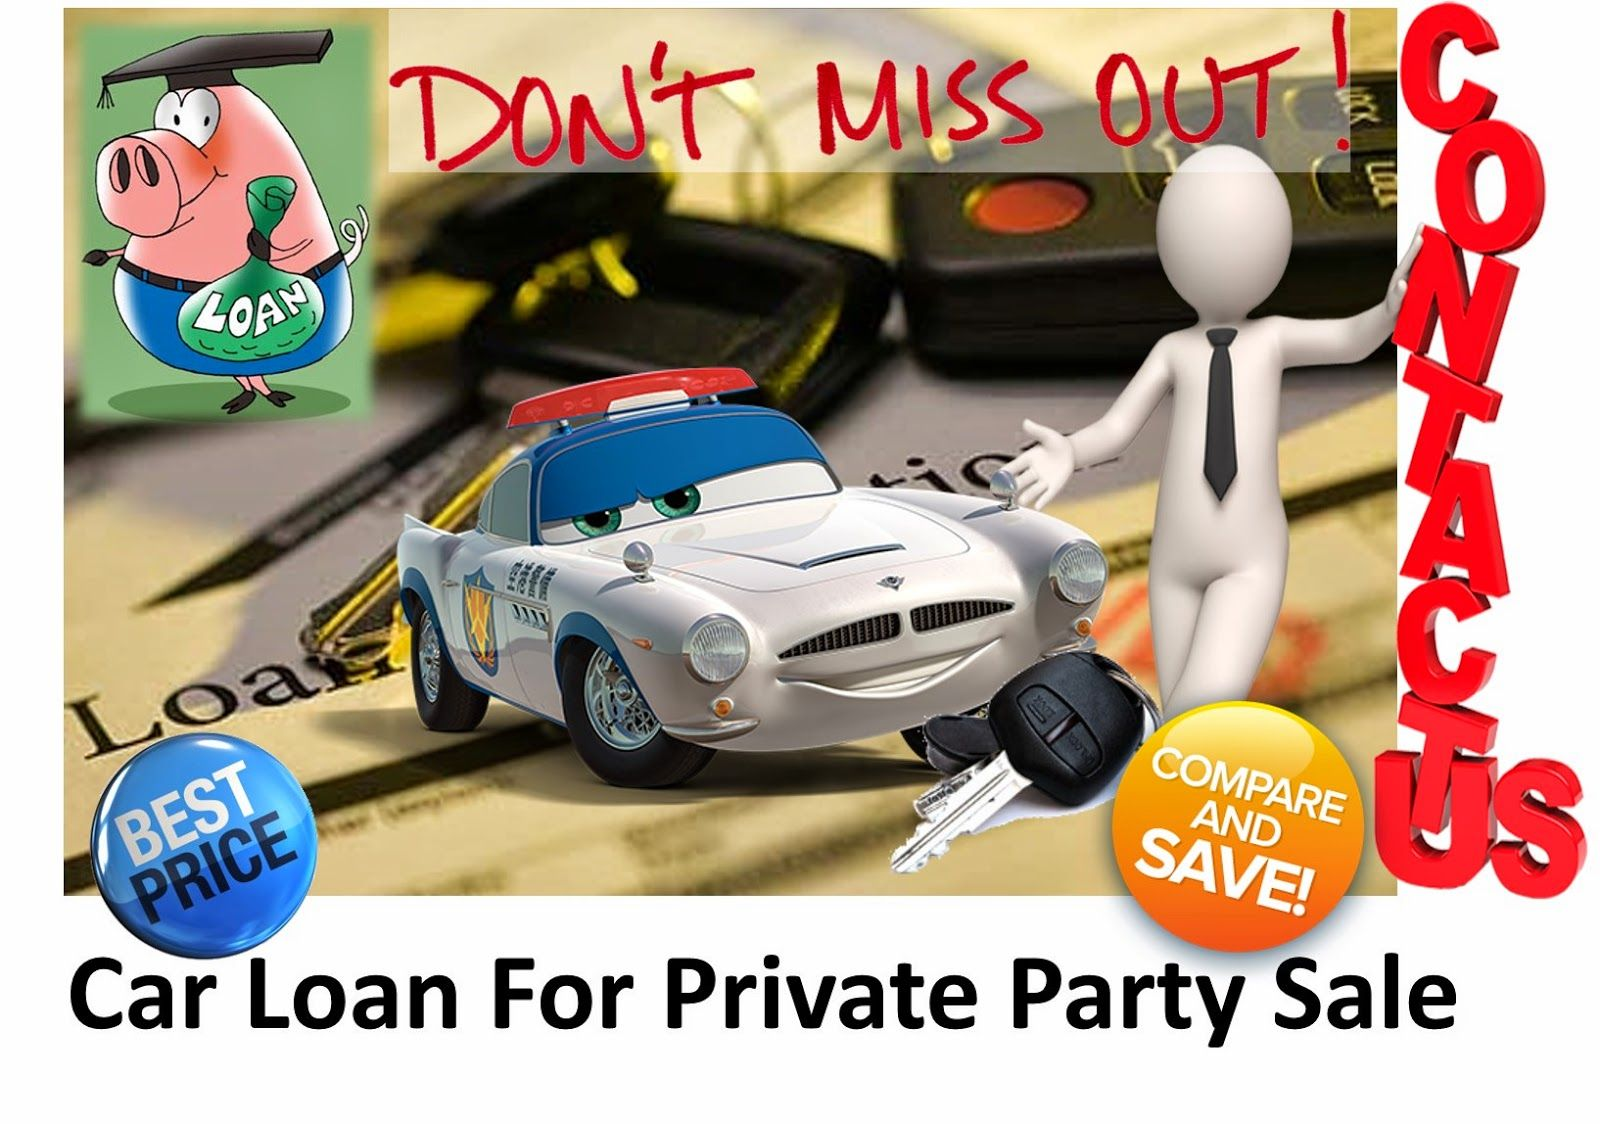 Now Get The Best Private Party Car Financing From Online Lenders